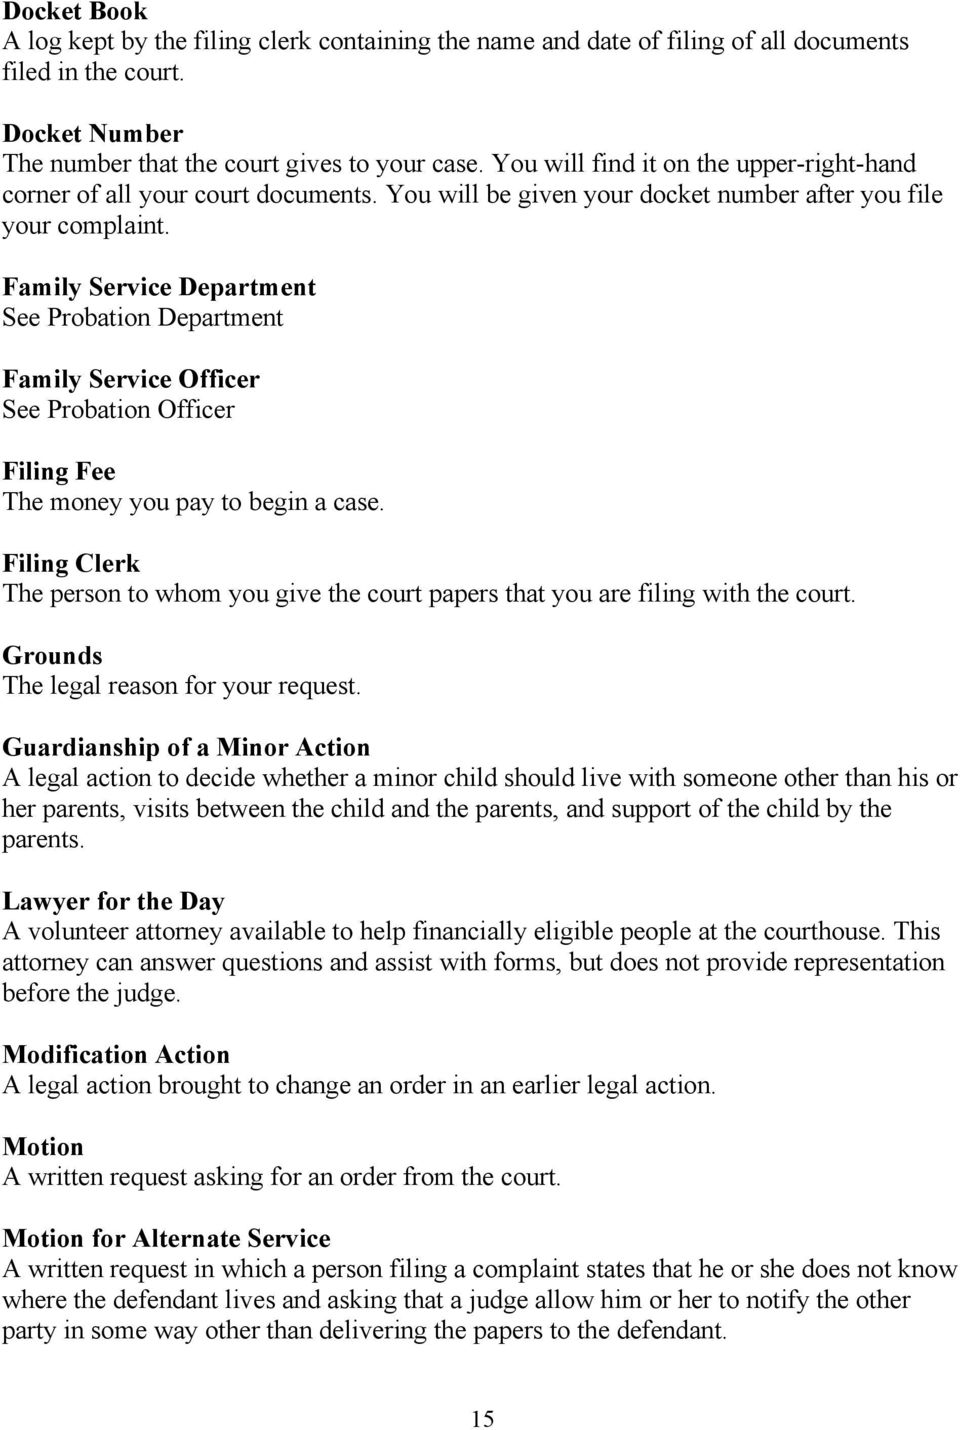 Discussion on this topic: Decide Whether to File for Child Support, decide-whether-to-file-for-child-support/